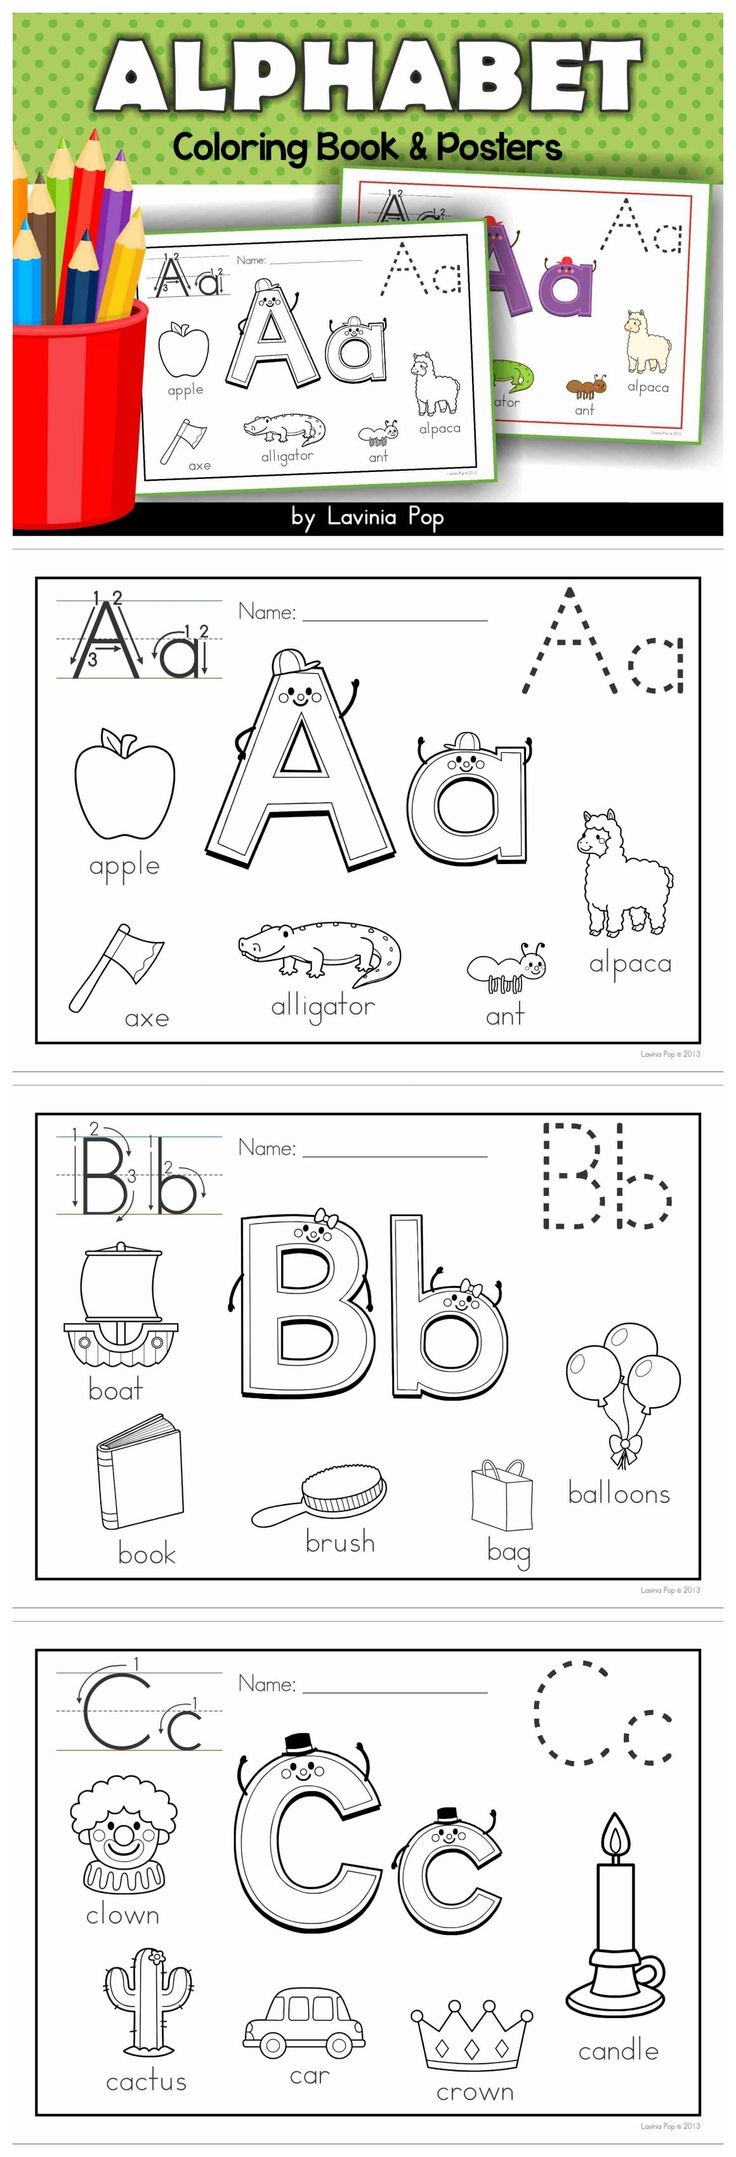 Long e coloring pages - Alphabet Coloring Book And Posters